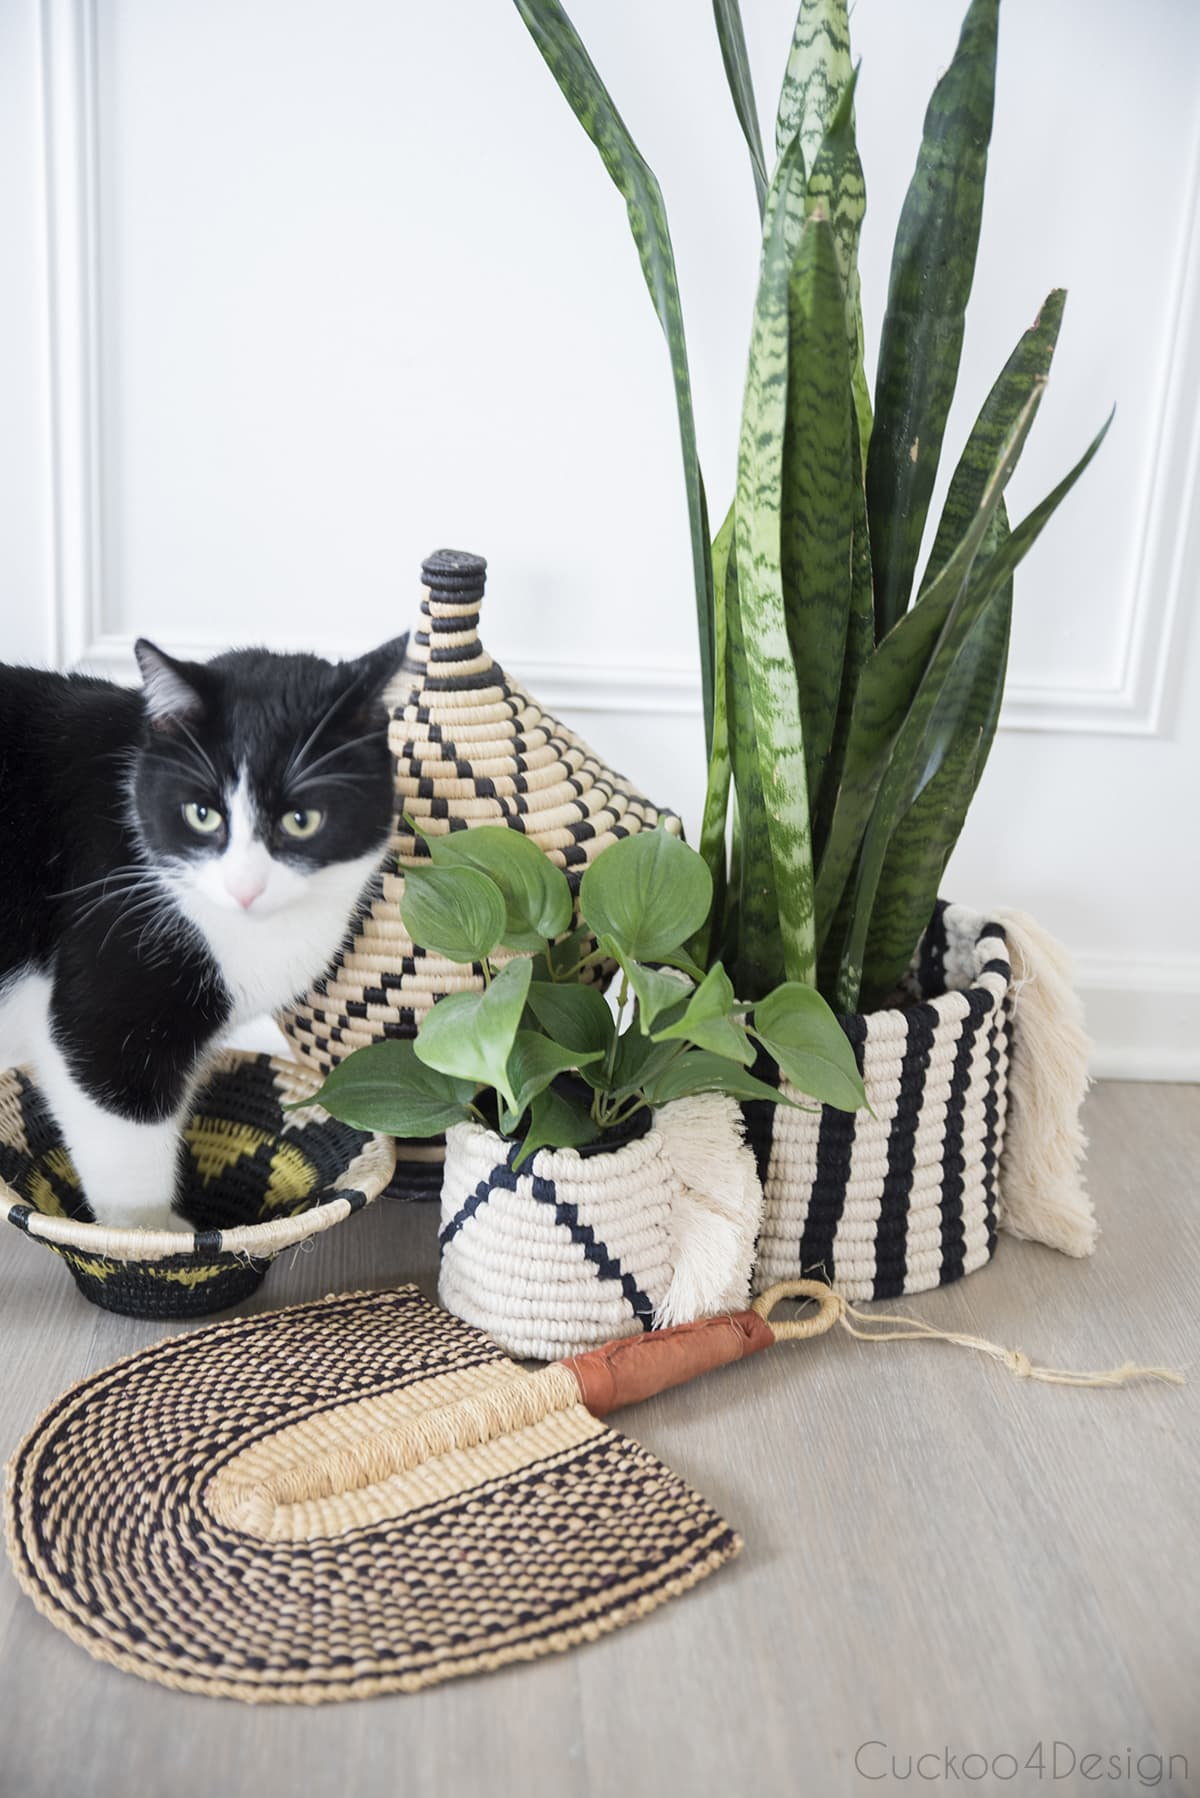 cat trying to sit in macrame basket